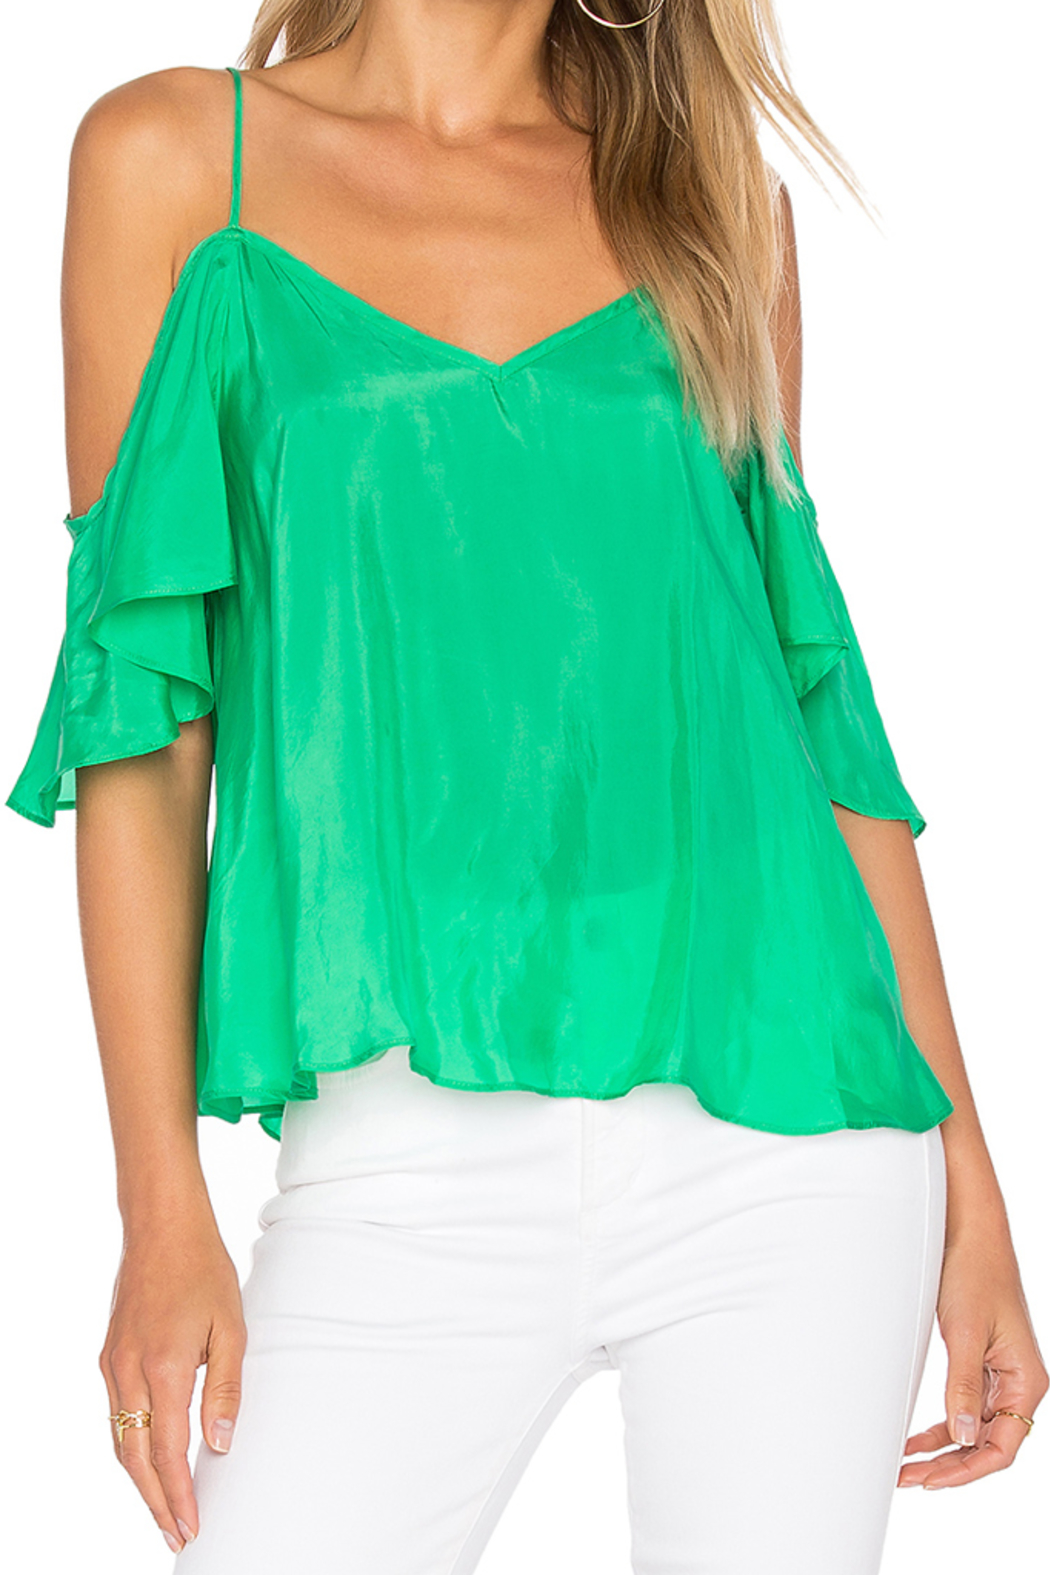 Blaque Label Ruffle Top - Main Image